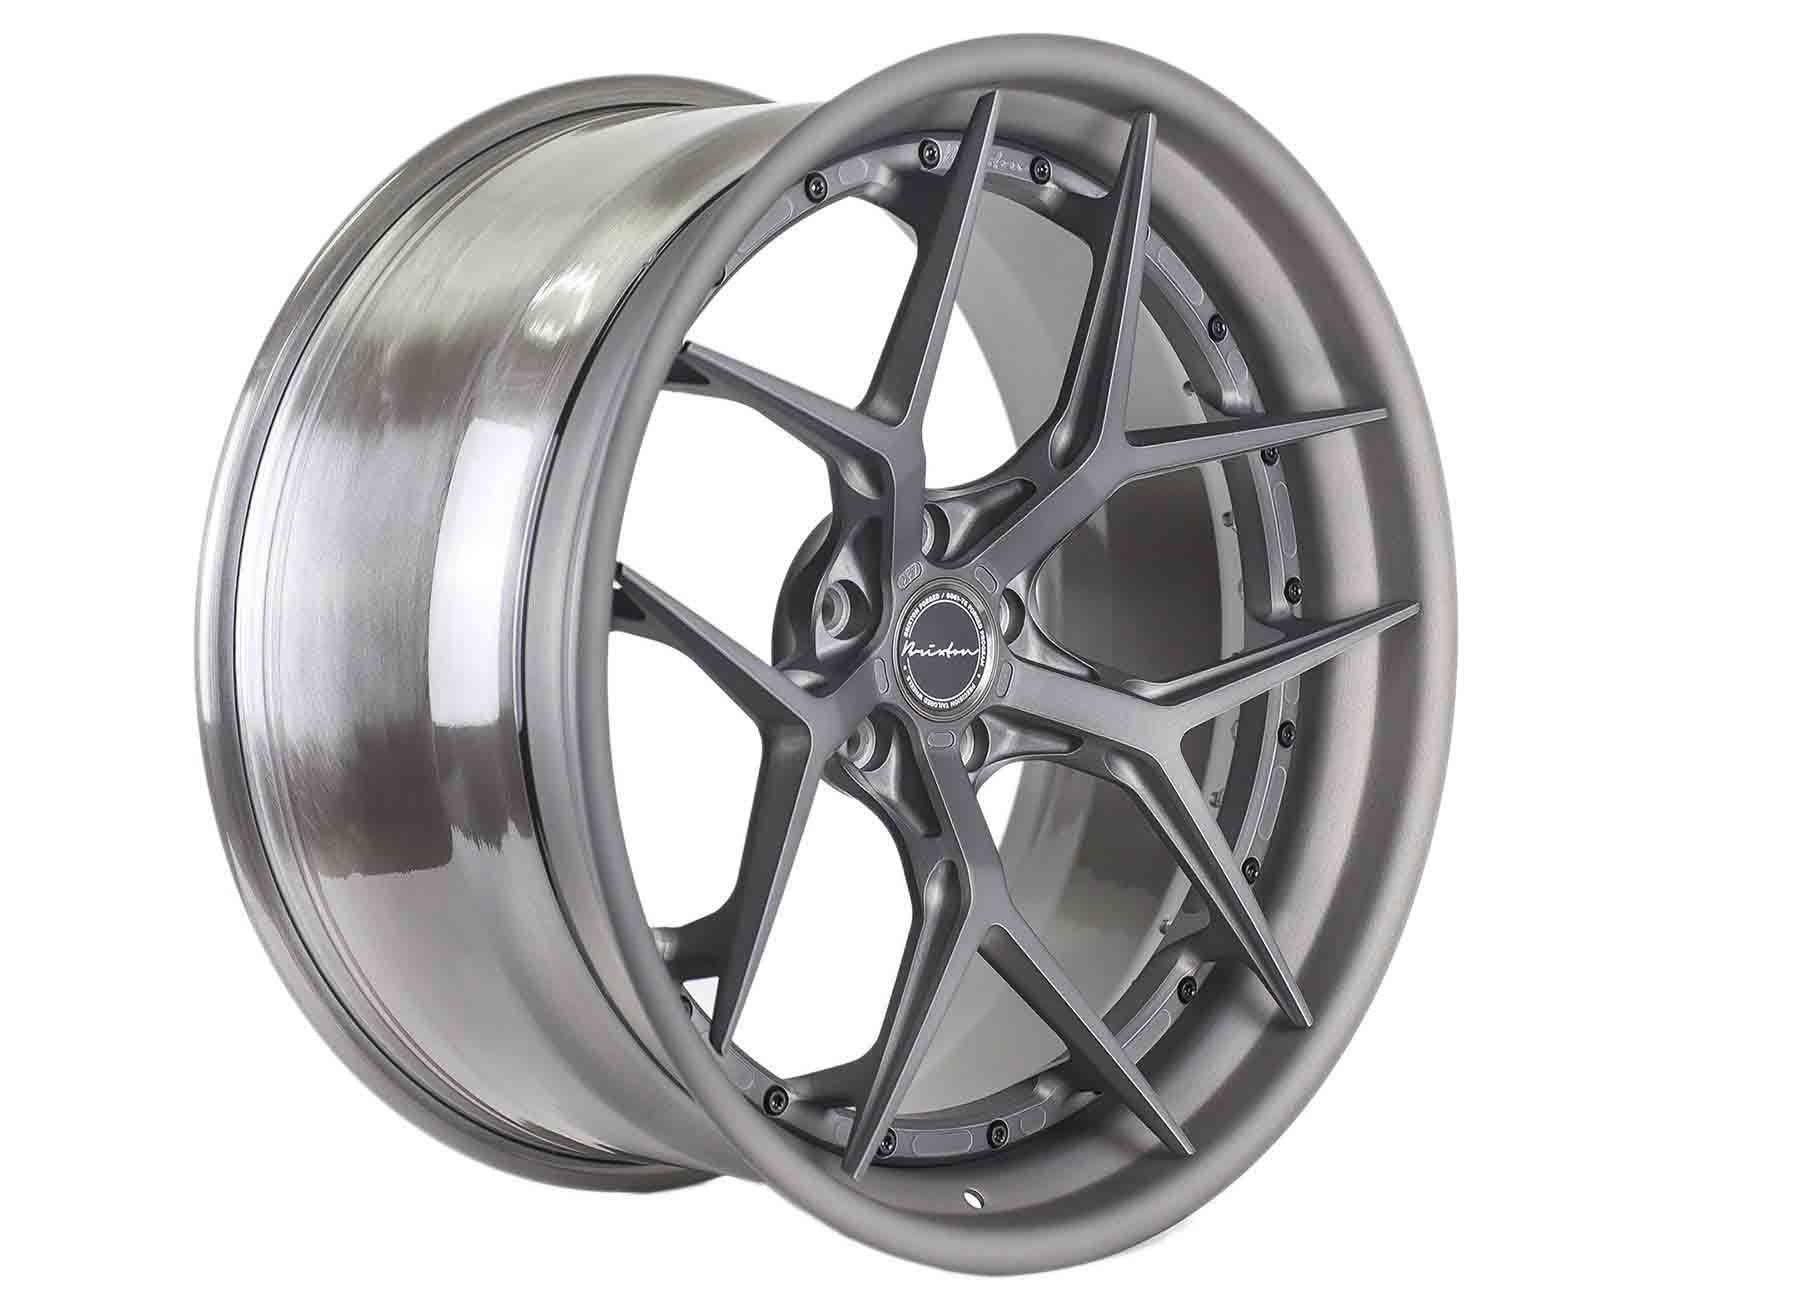 images-products-1-1817-232974105-brixton-forged-pf7-targa-series-brushed-triple-tint-satin-clear-02-1800x1304.jpg